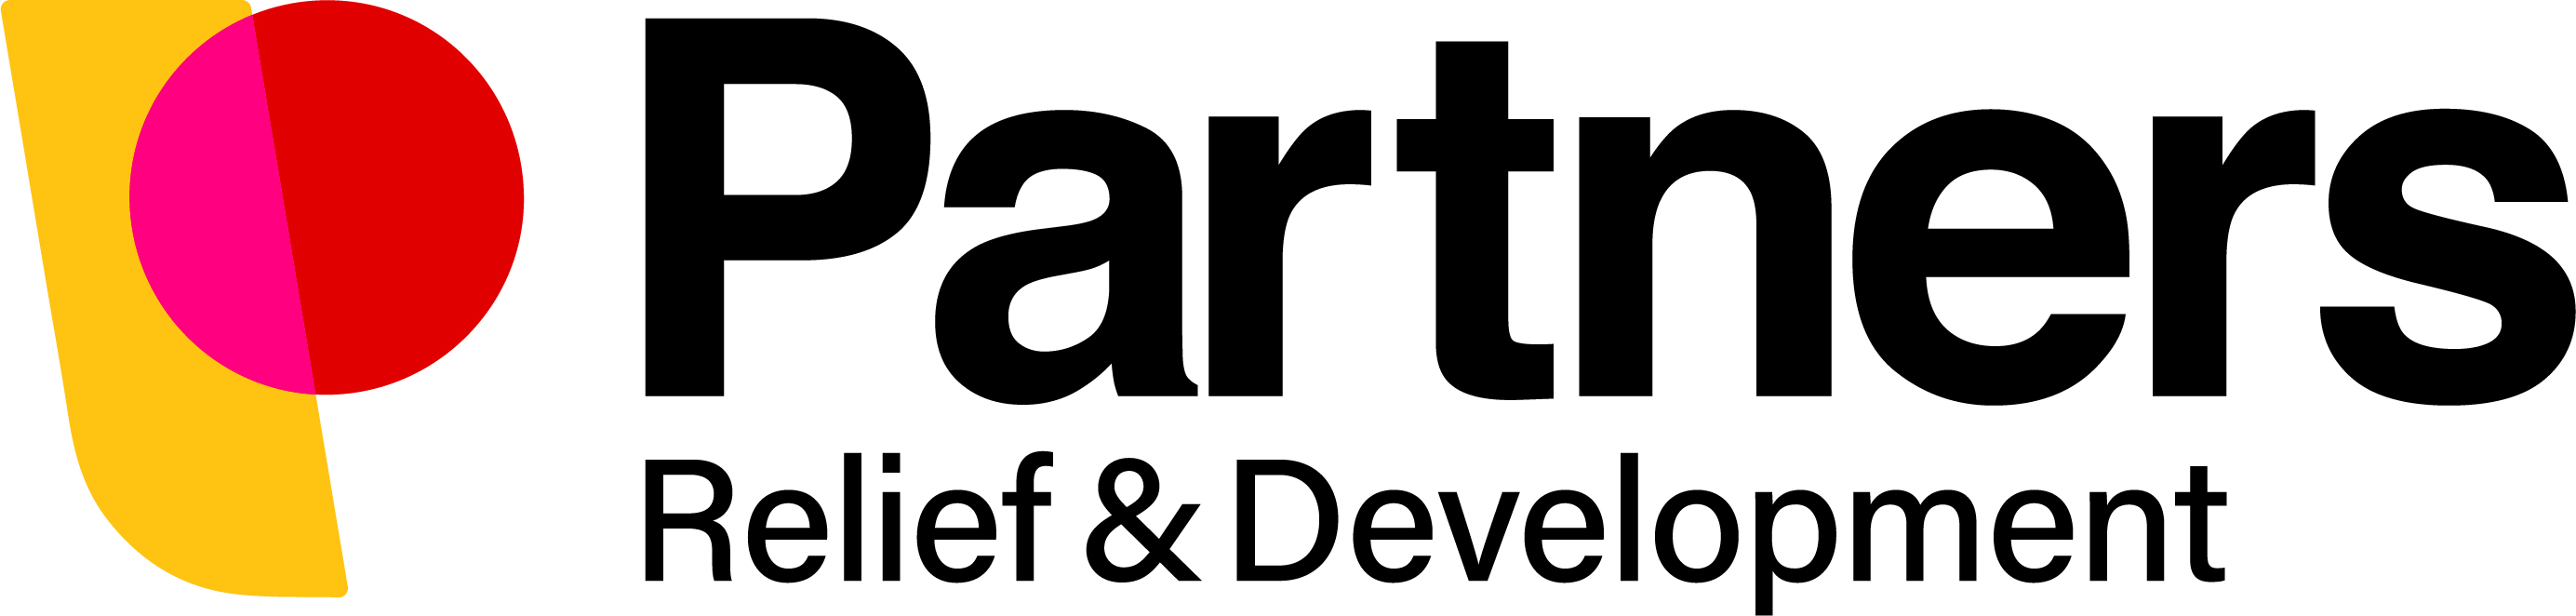 Partners Relief and Development logo